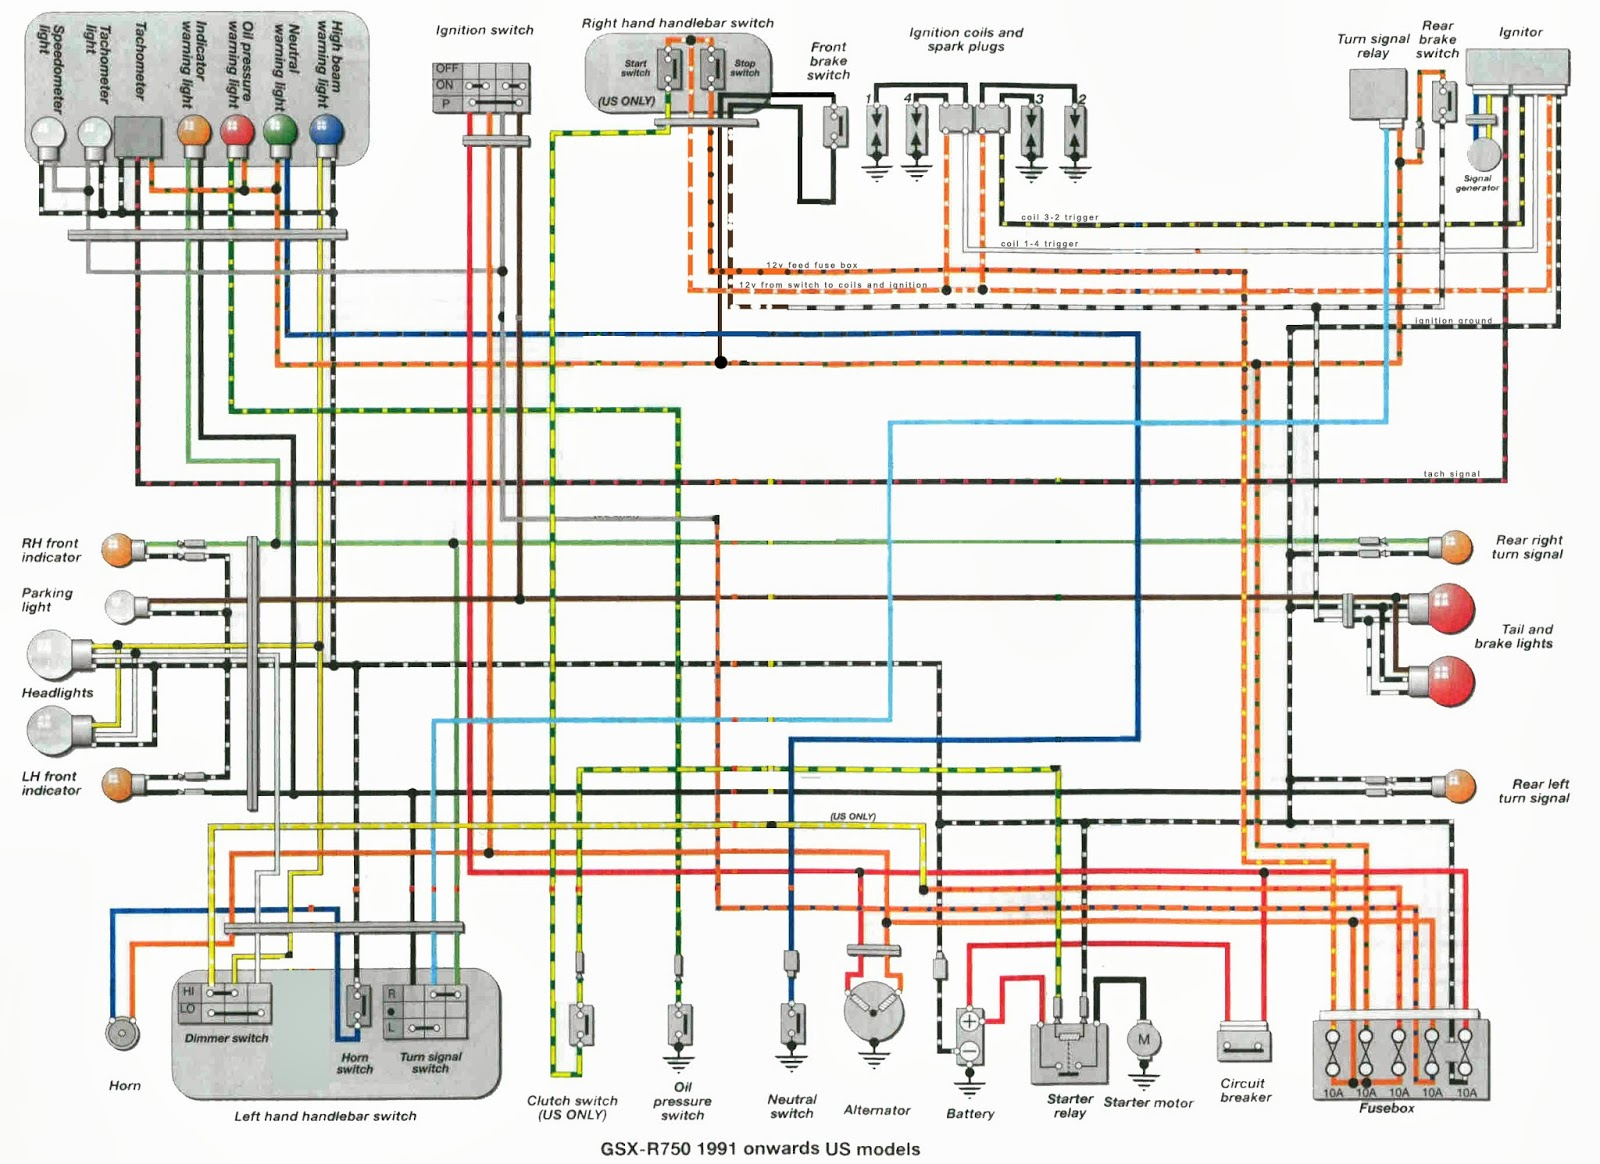 95 Cbr Wiring Diagram - wiring diagrams schematics